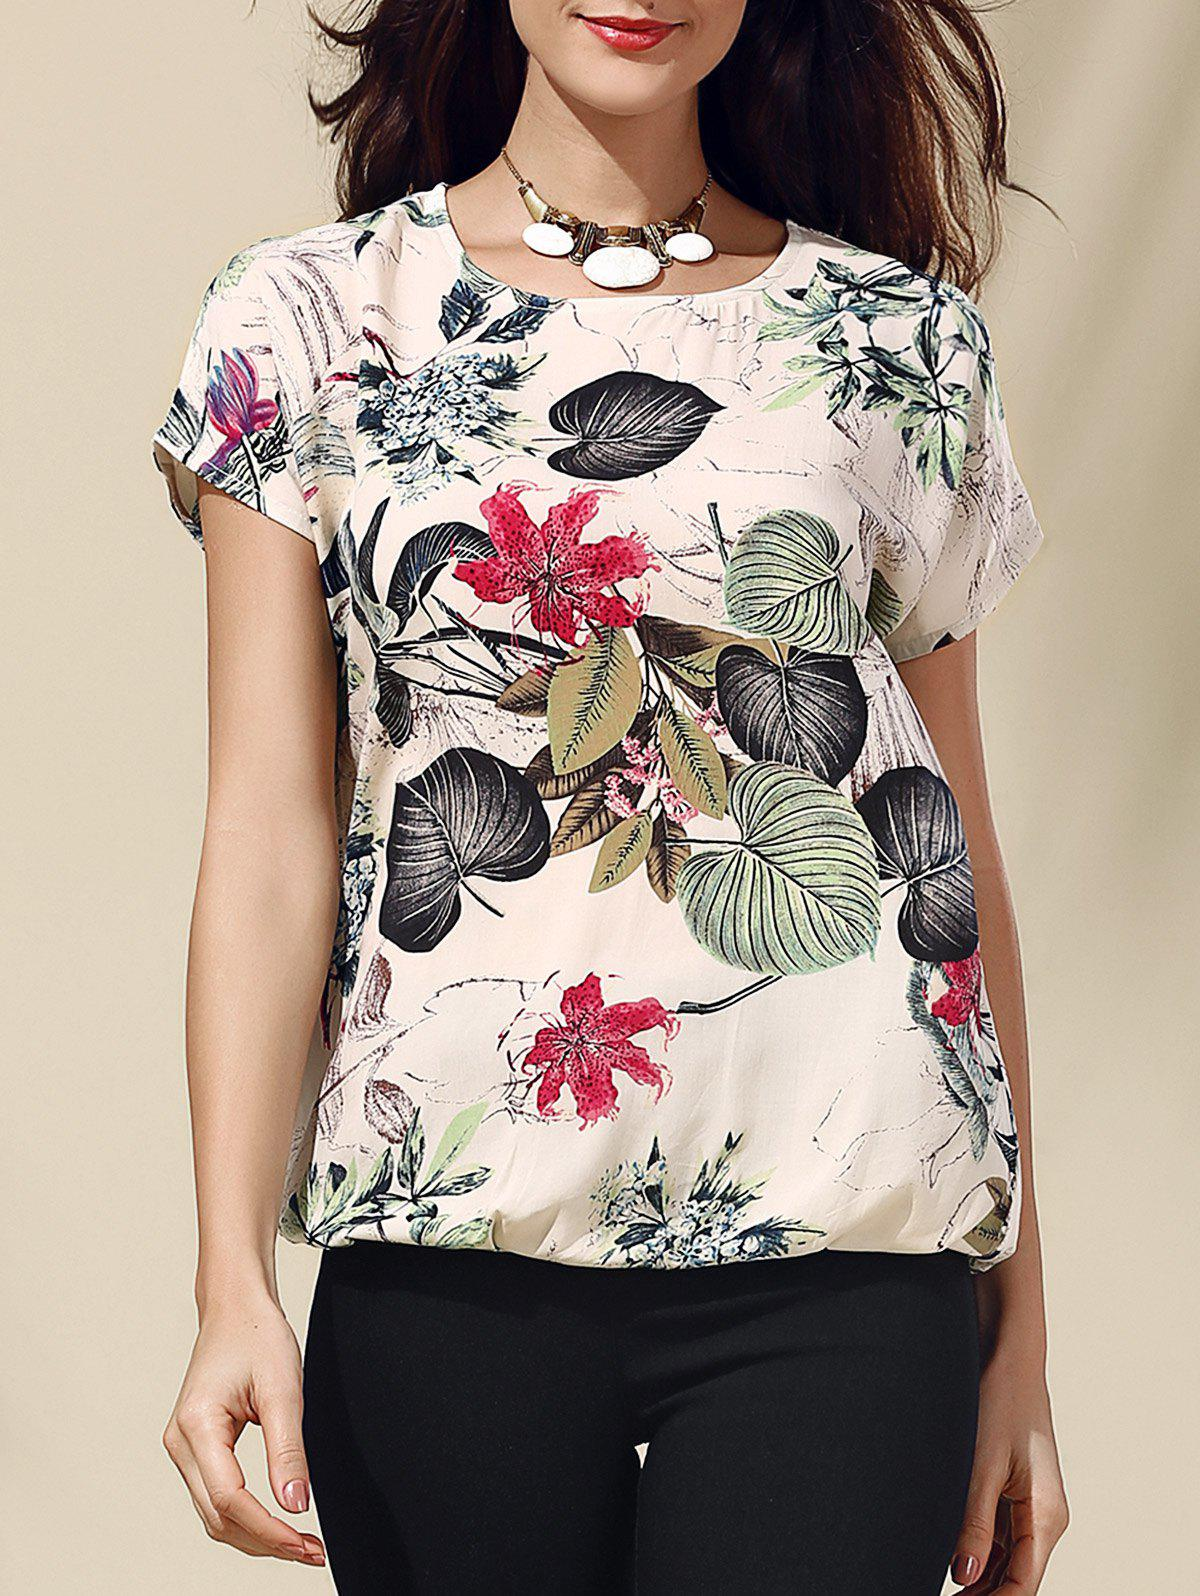 Retro Style Scoop Neck Short Sleeve Floral Print Loose Women's T-Shirt - GRAY S